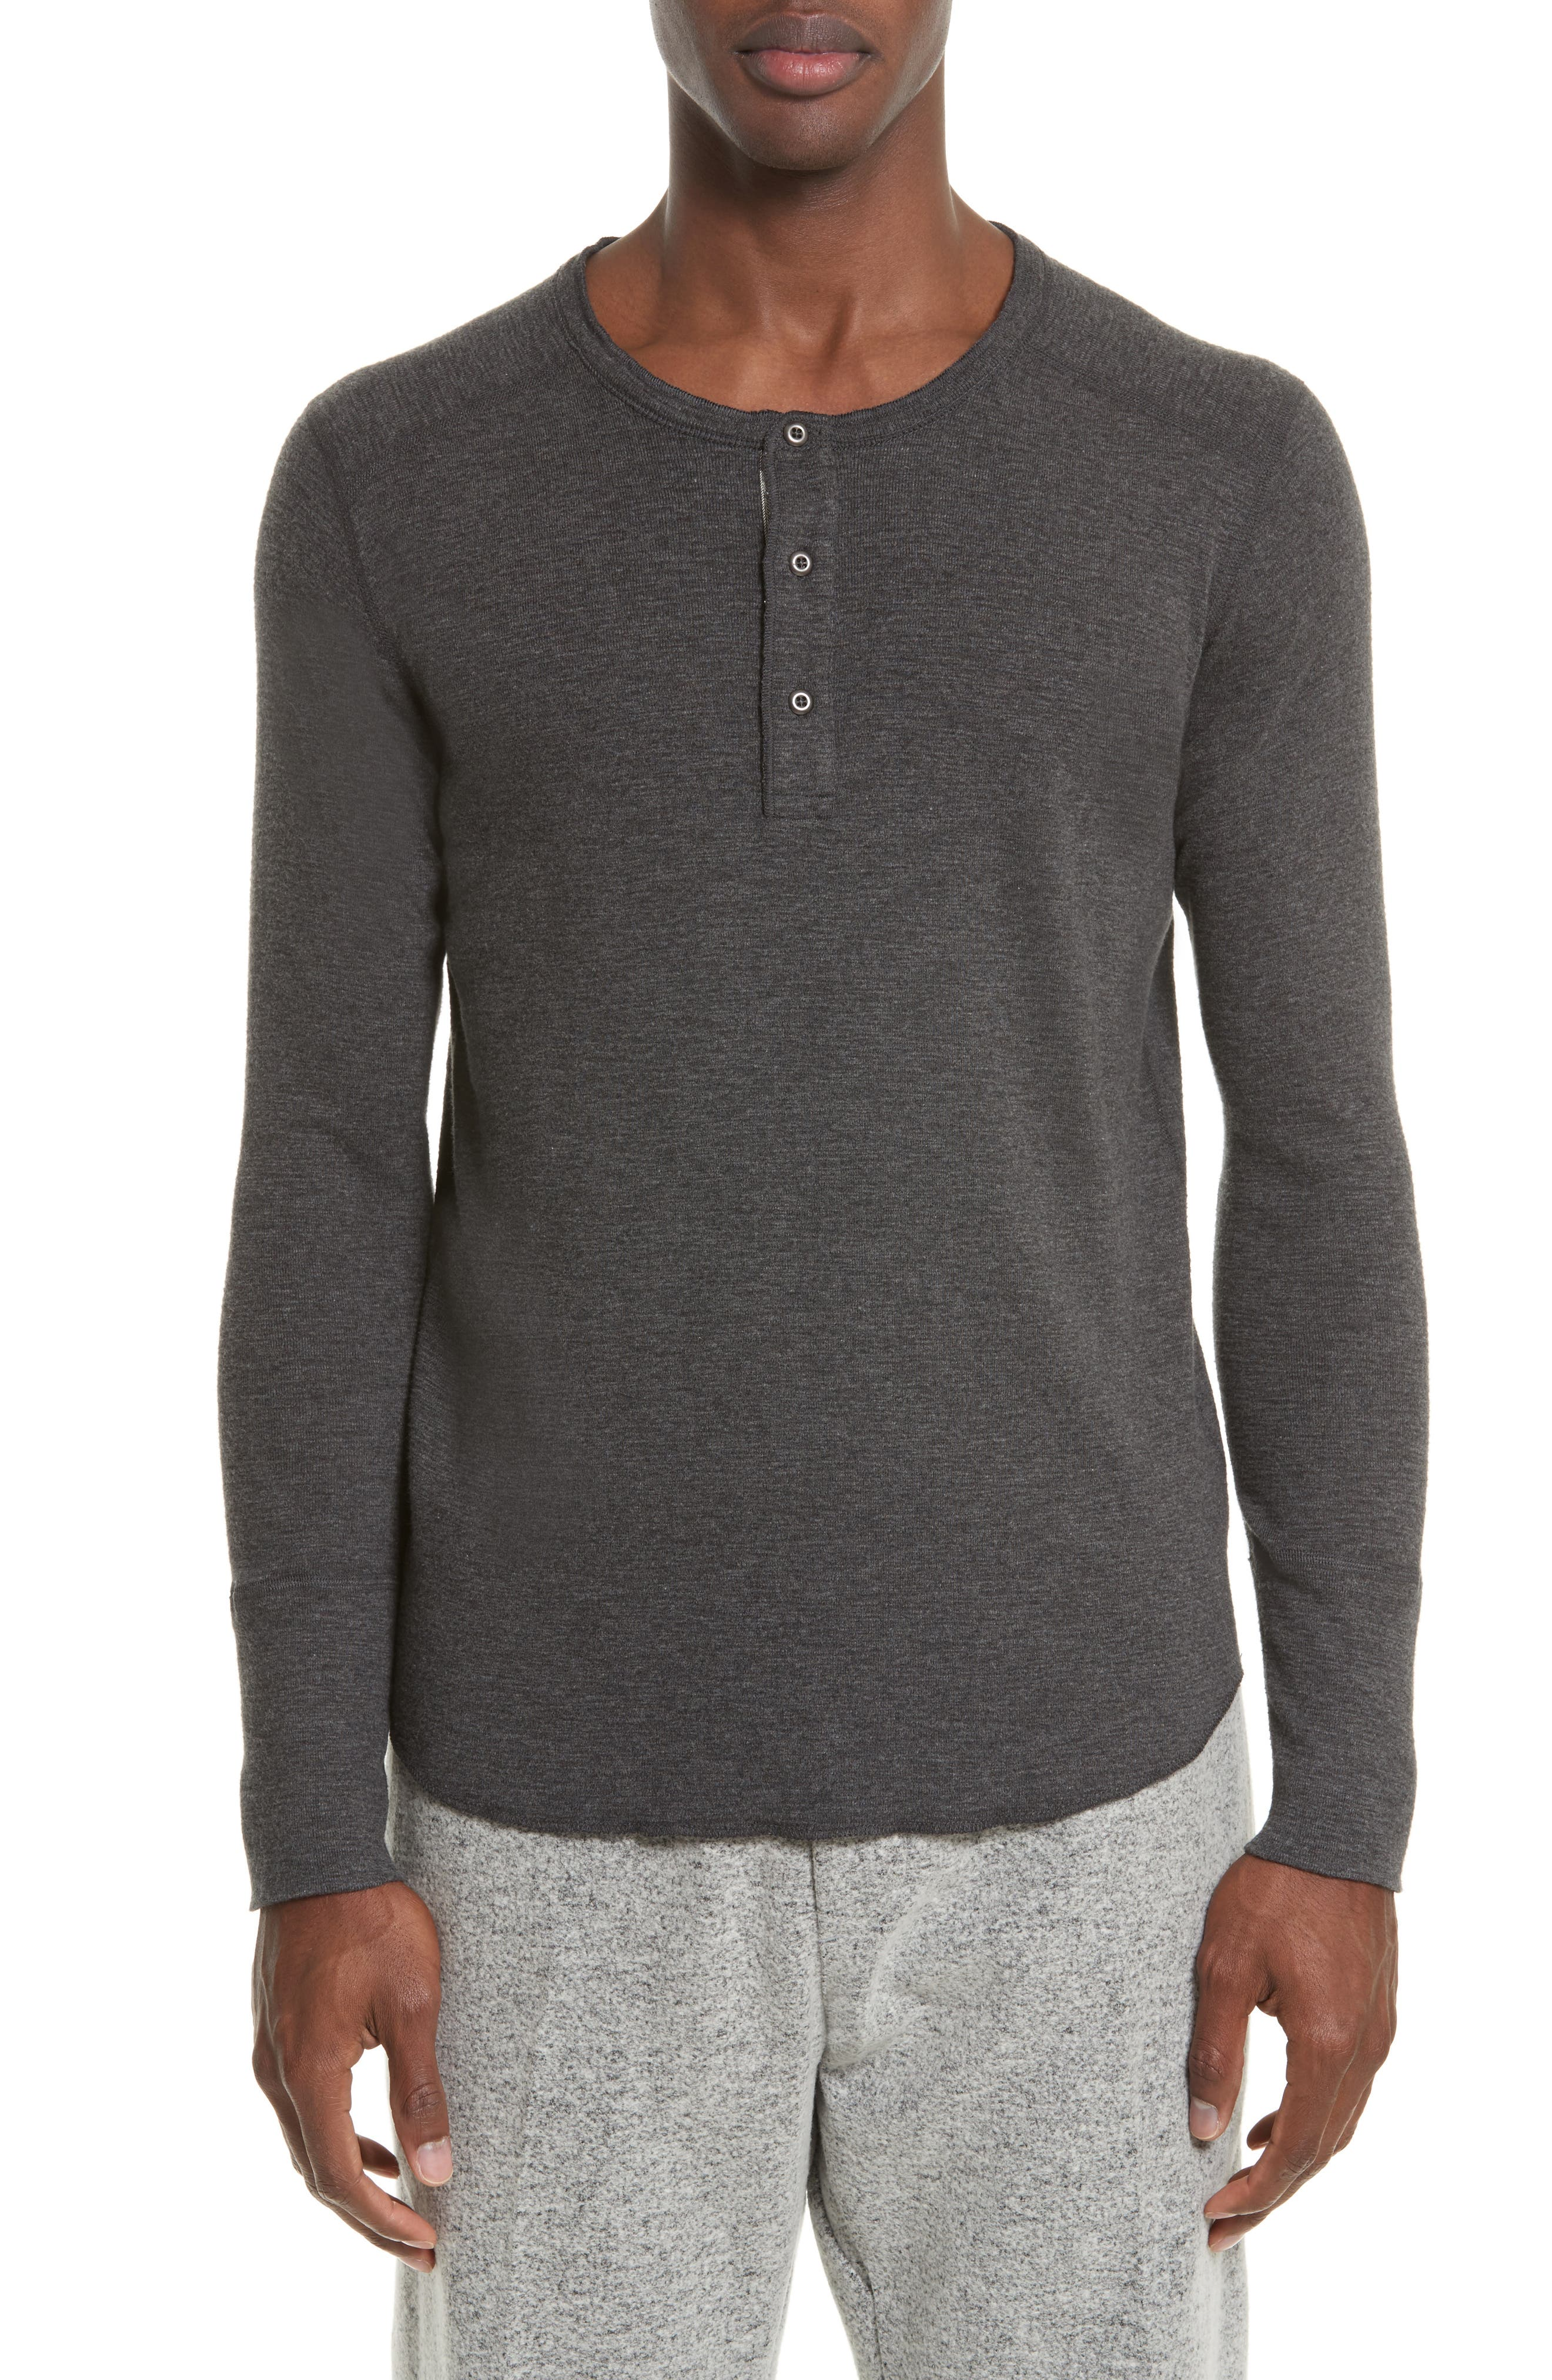 WINGS + HORNS 'Base' Long Sleeve Henley in Heather Charcoal